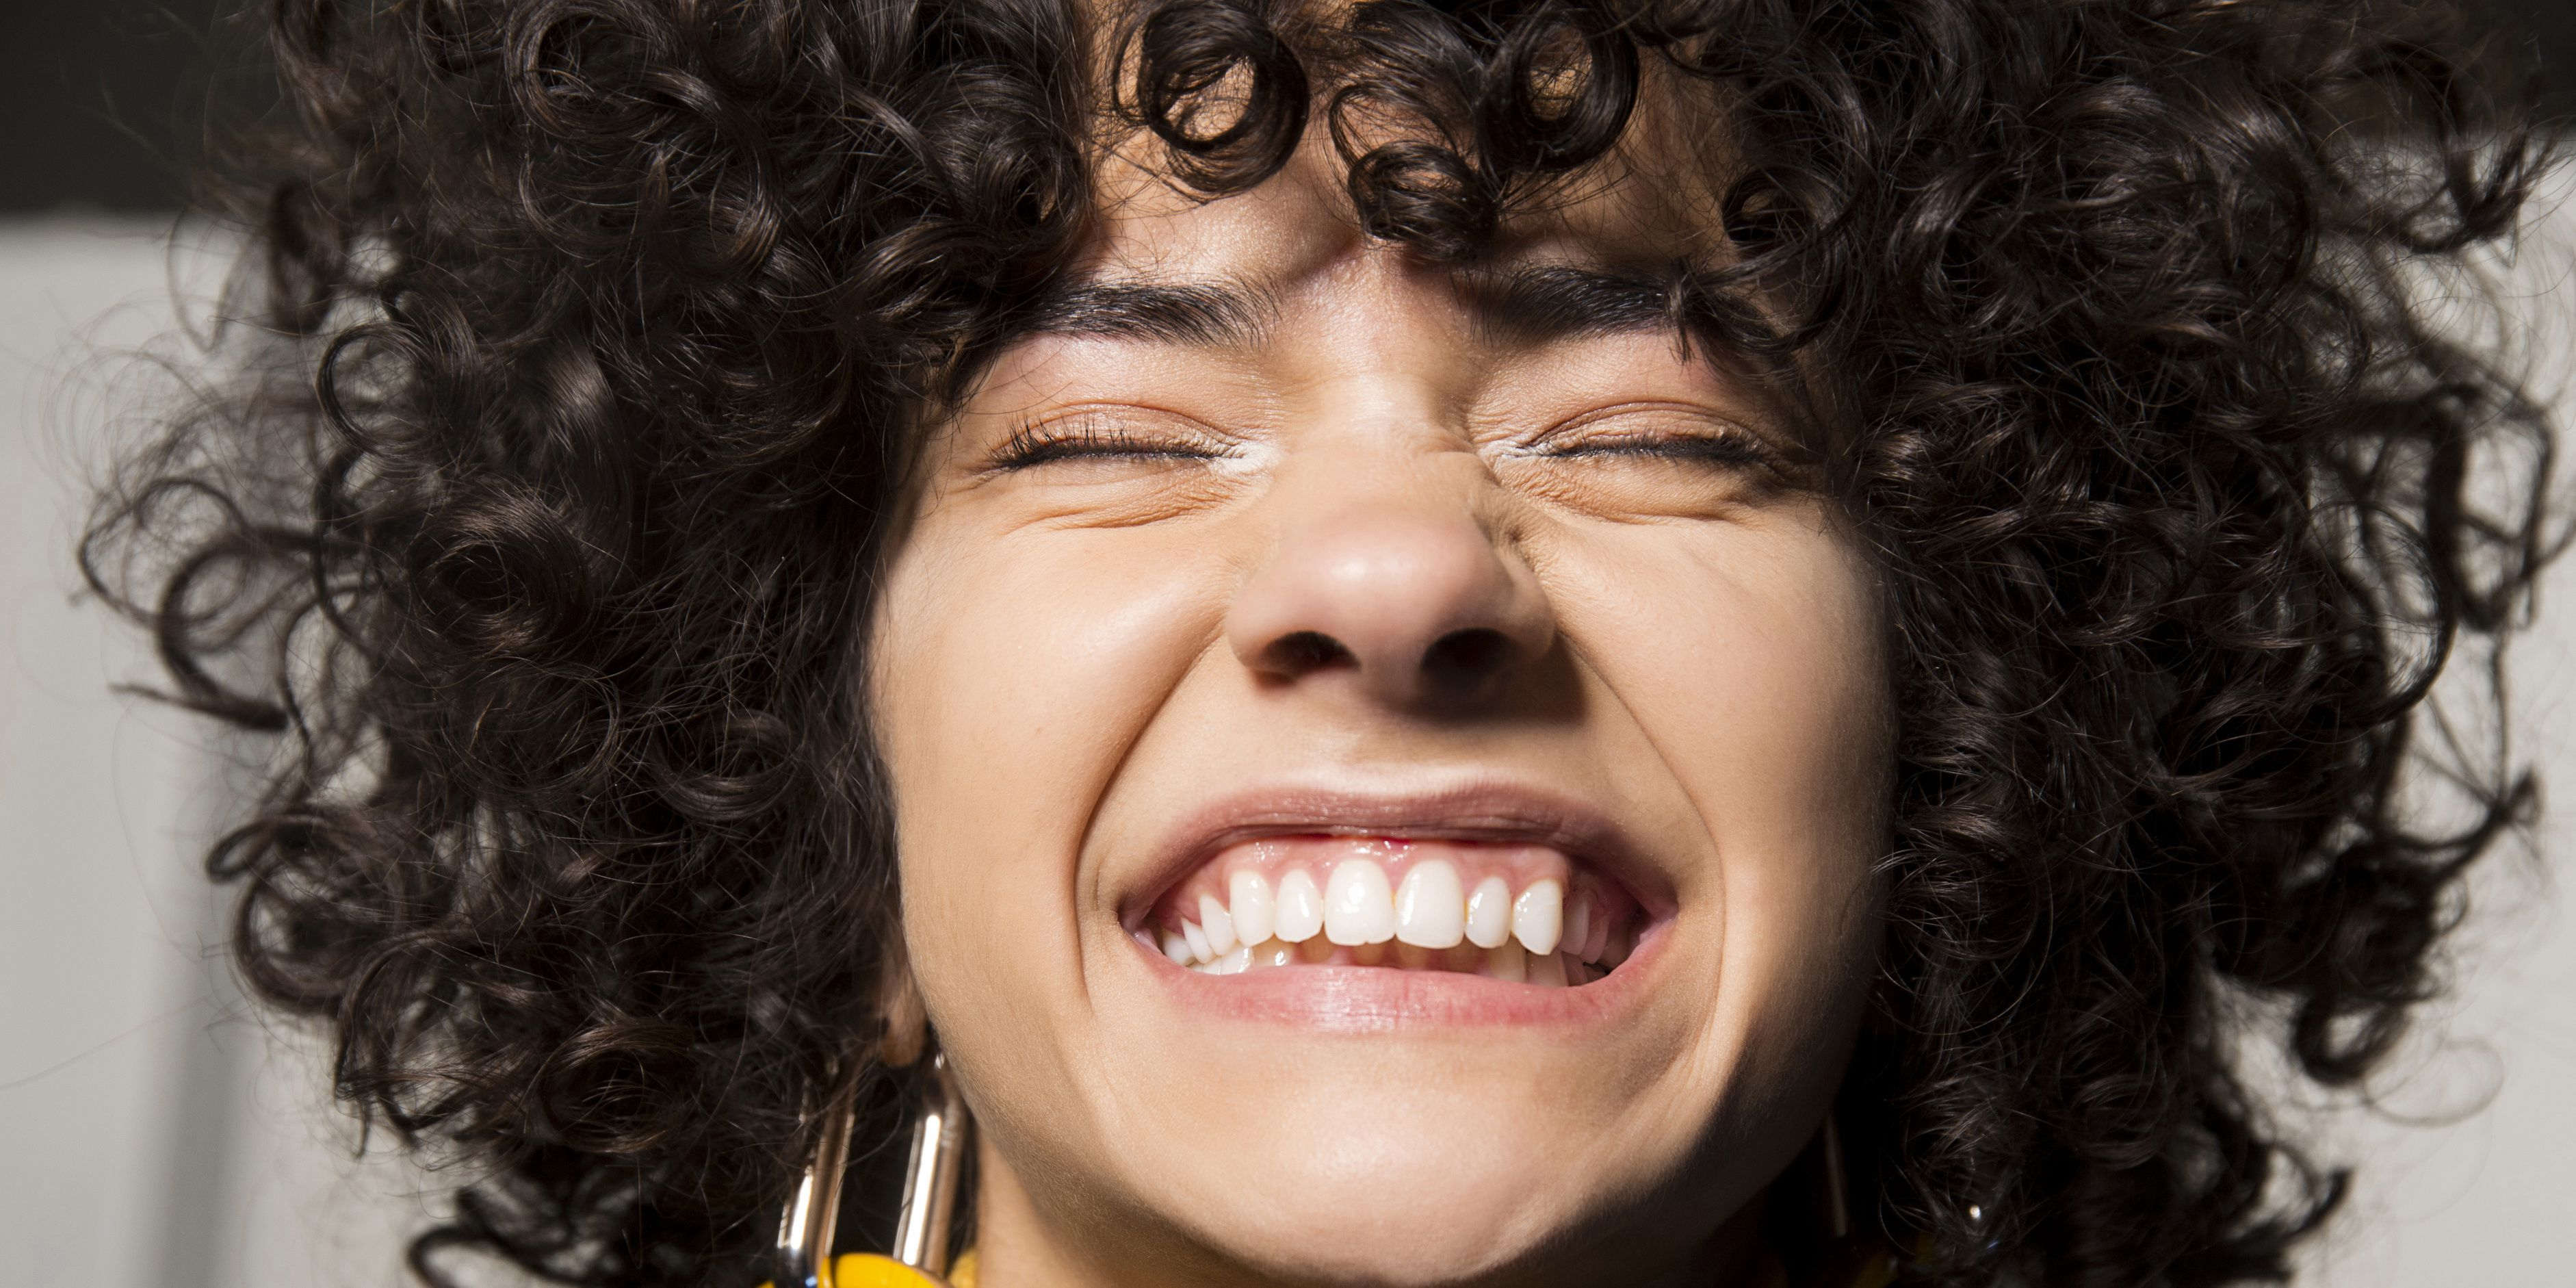 Teeth Whitening Questions Answered